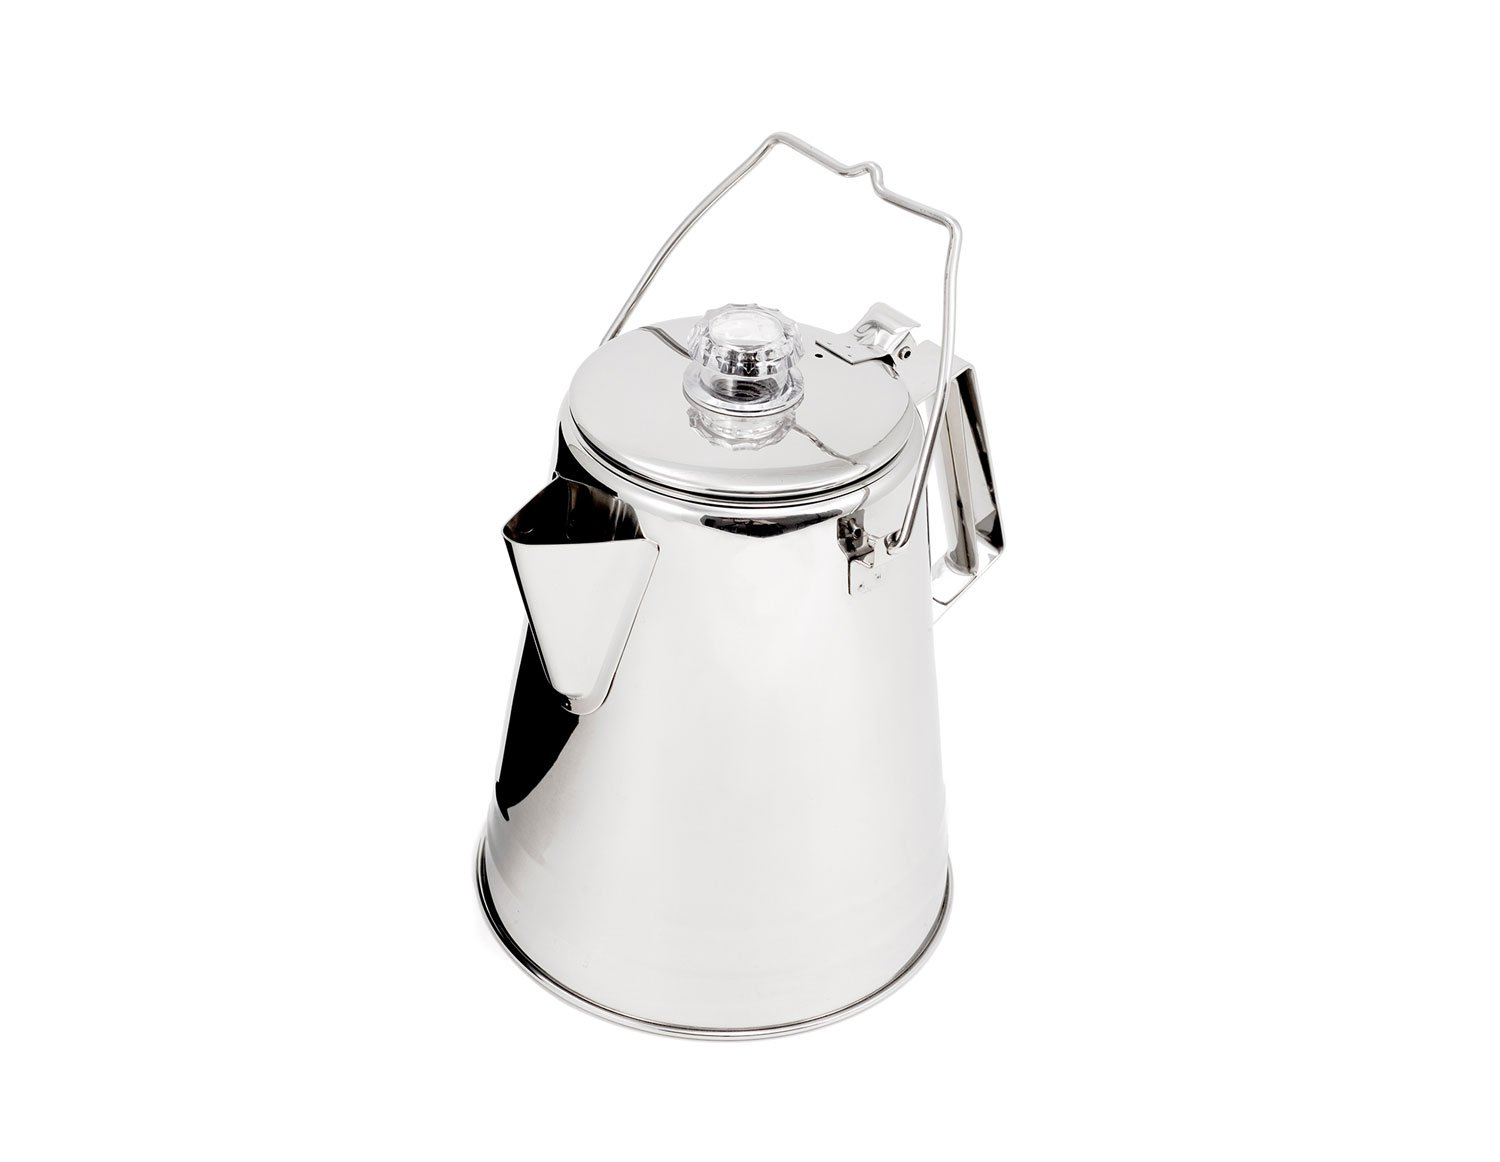 GSI Outdoors Glacier Stainless Steel 14 Cup Percolator Ultra-Rugged for Brewing Coffee While Camping with Groups by GSI Outdoors